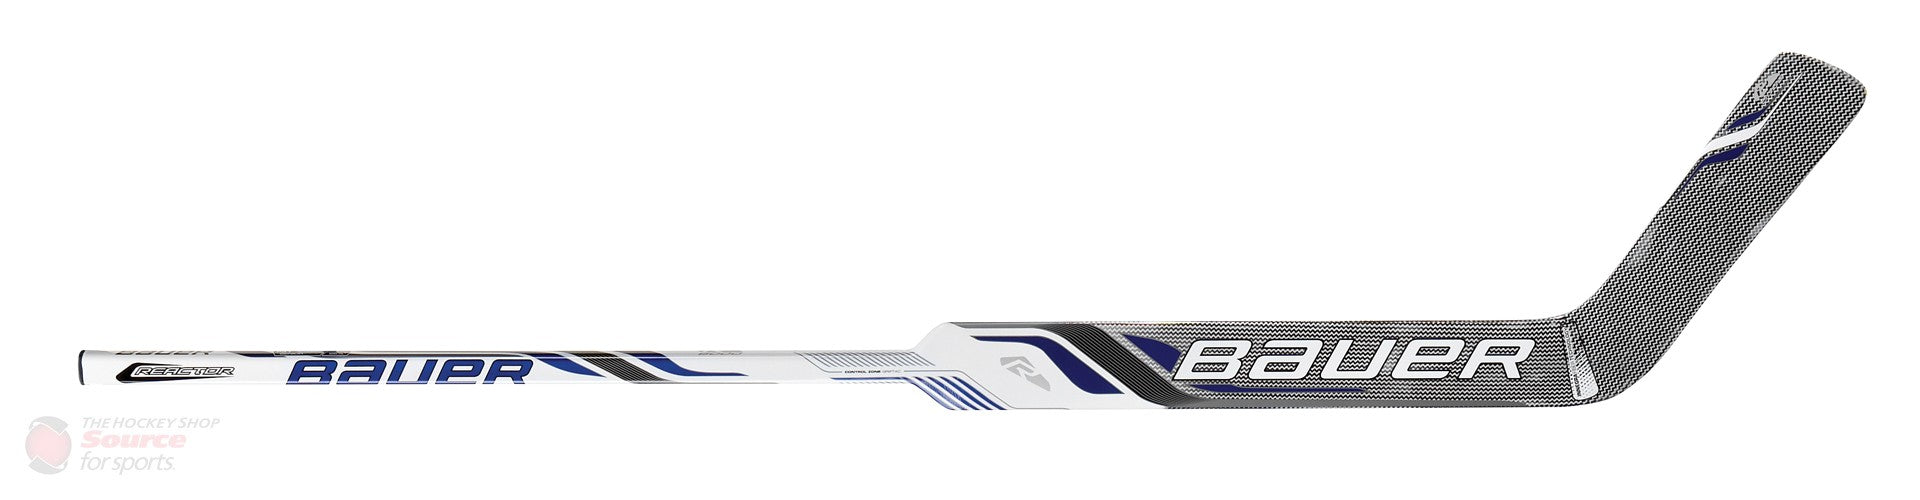 bauer 6000 goal stick blue